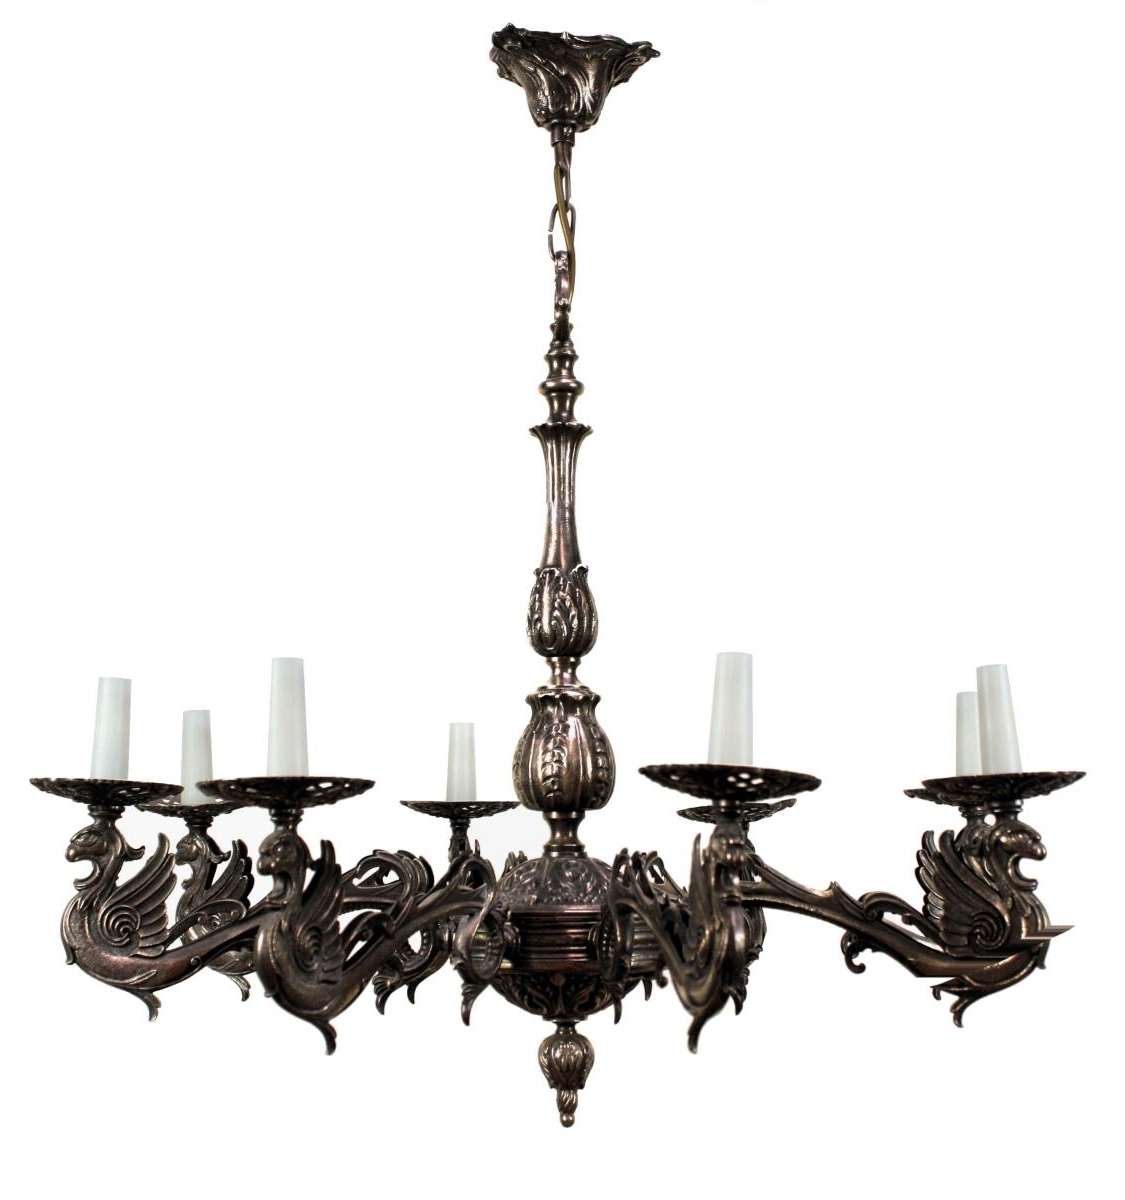 French Bronze Chandelier In Preferred French Silvered Bronze Gothic Style Chandelier, 1900S For Sale At Pamono (View 15 of 15)